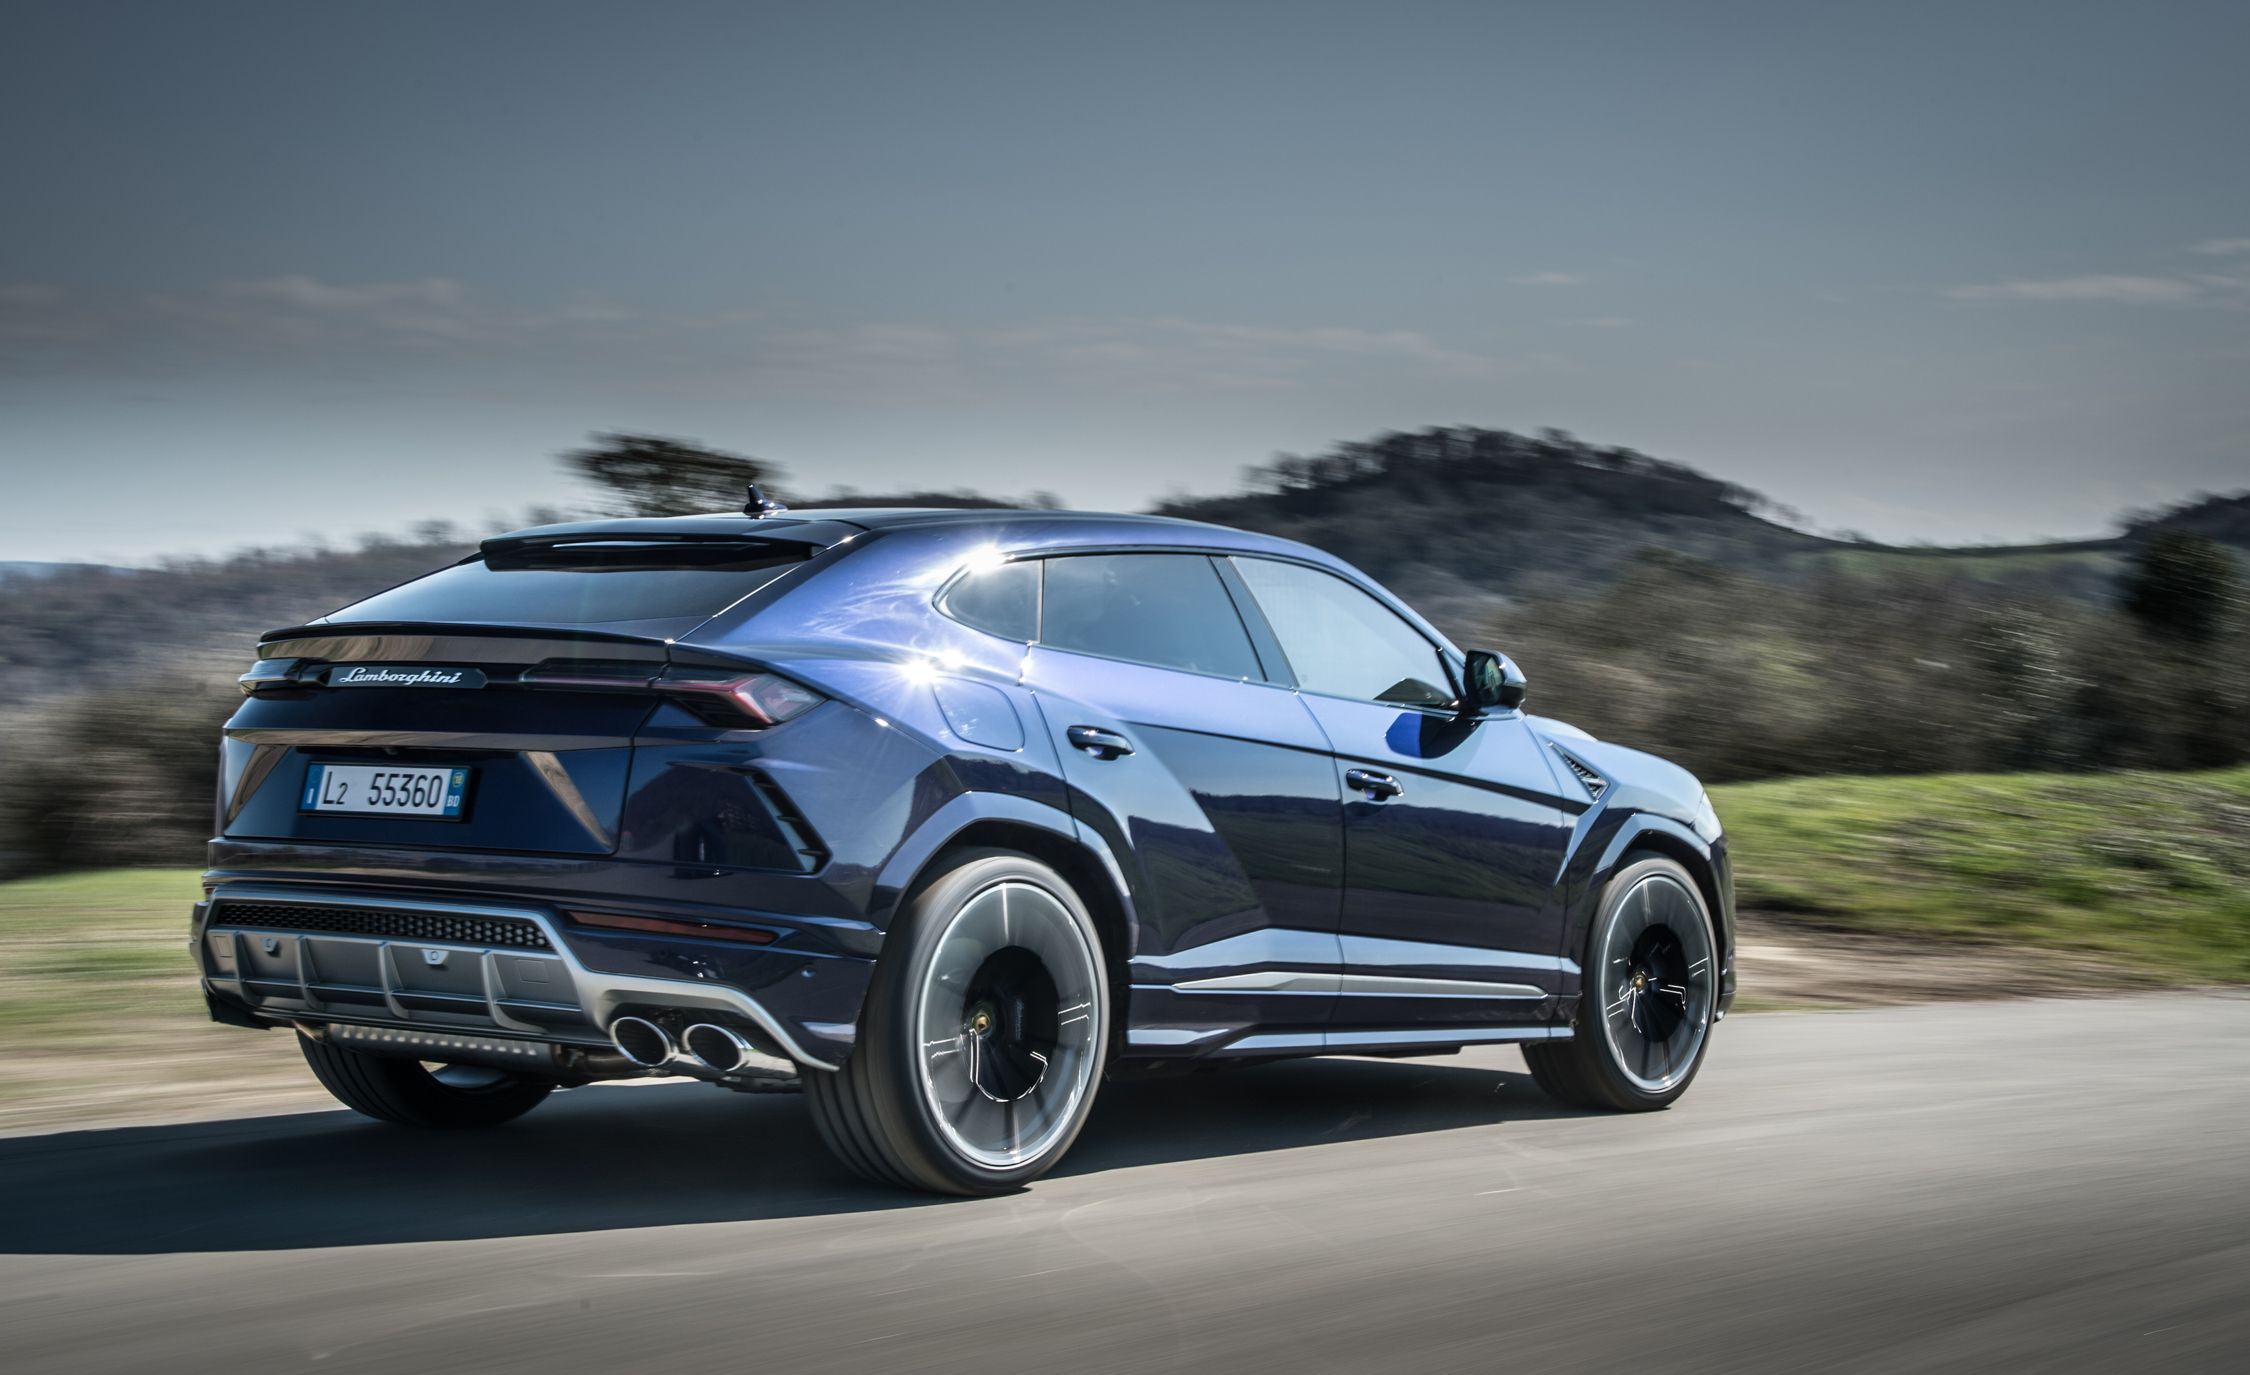 Lovely Lamborghini Urus Reviews | Lamborghini Urus Price, Photos, And Specs | Car  And Driver